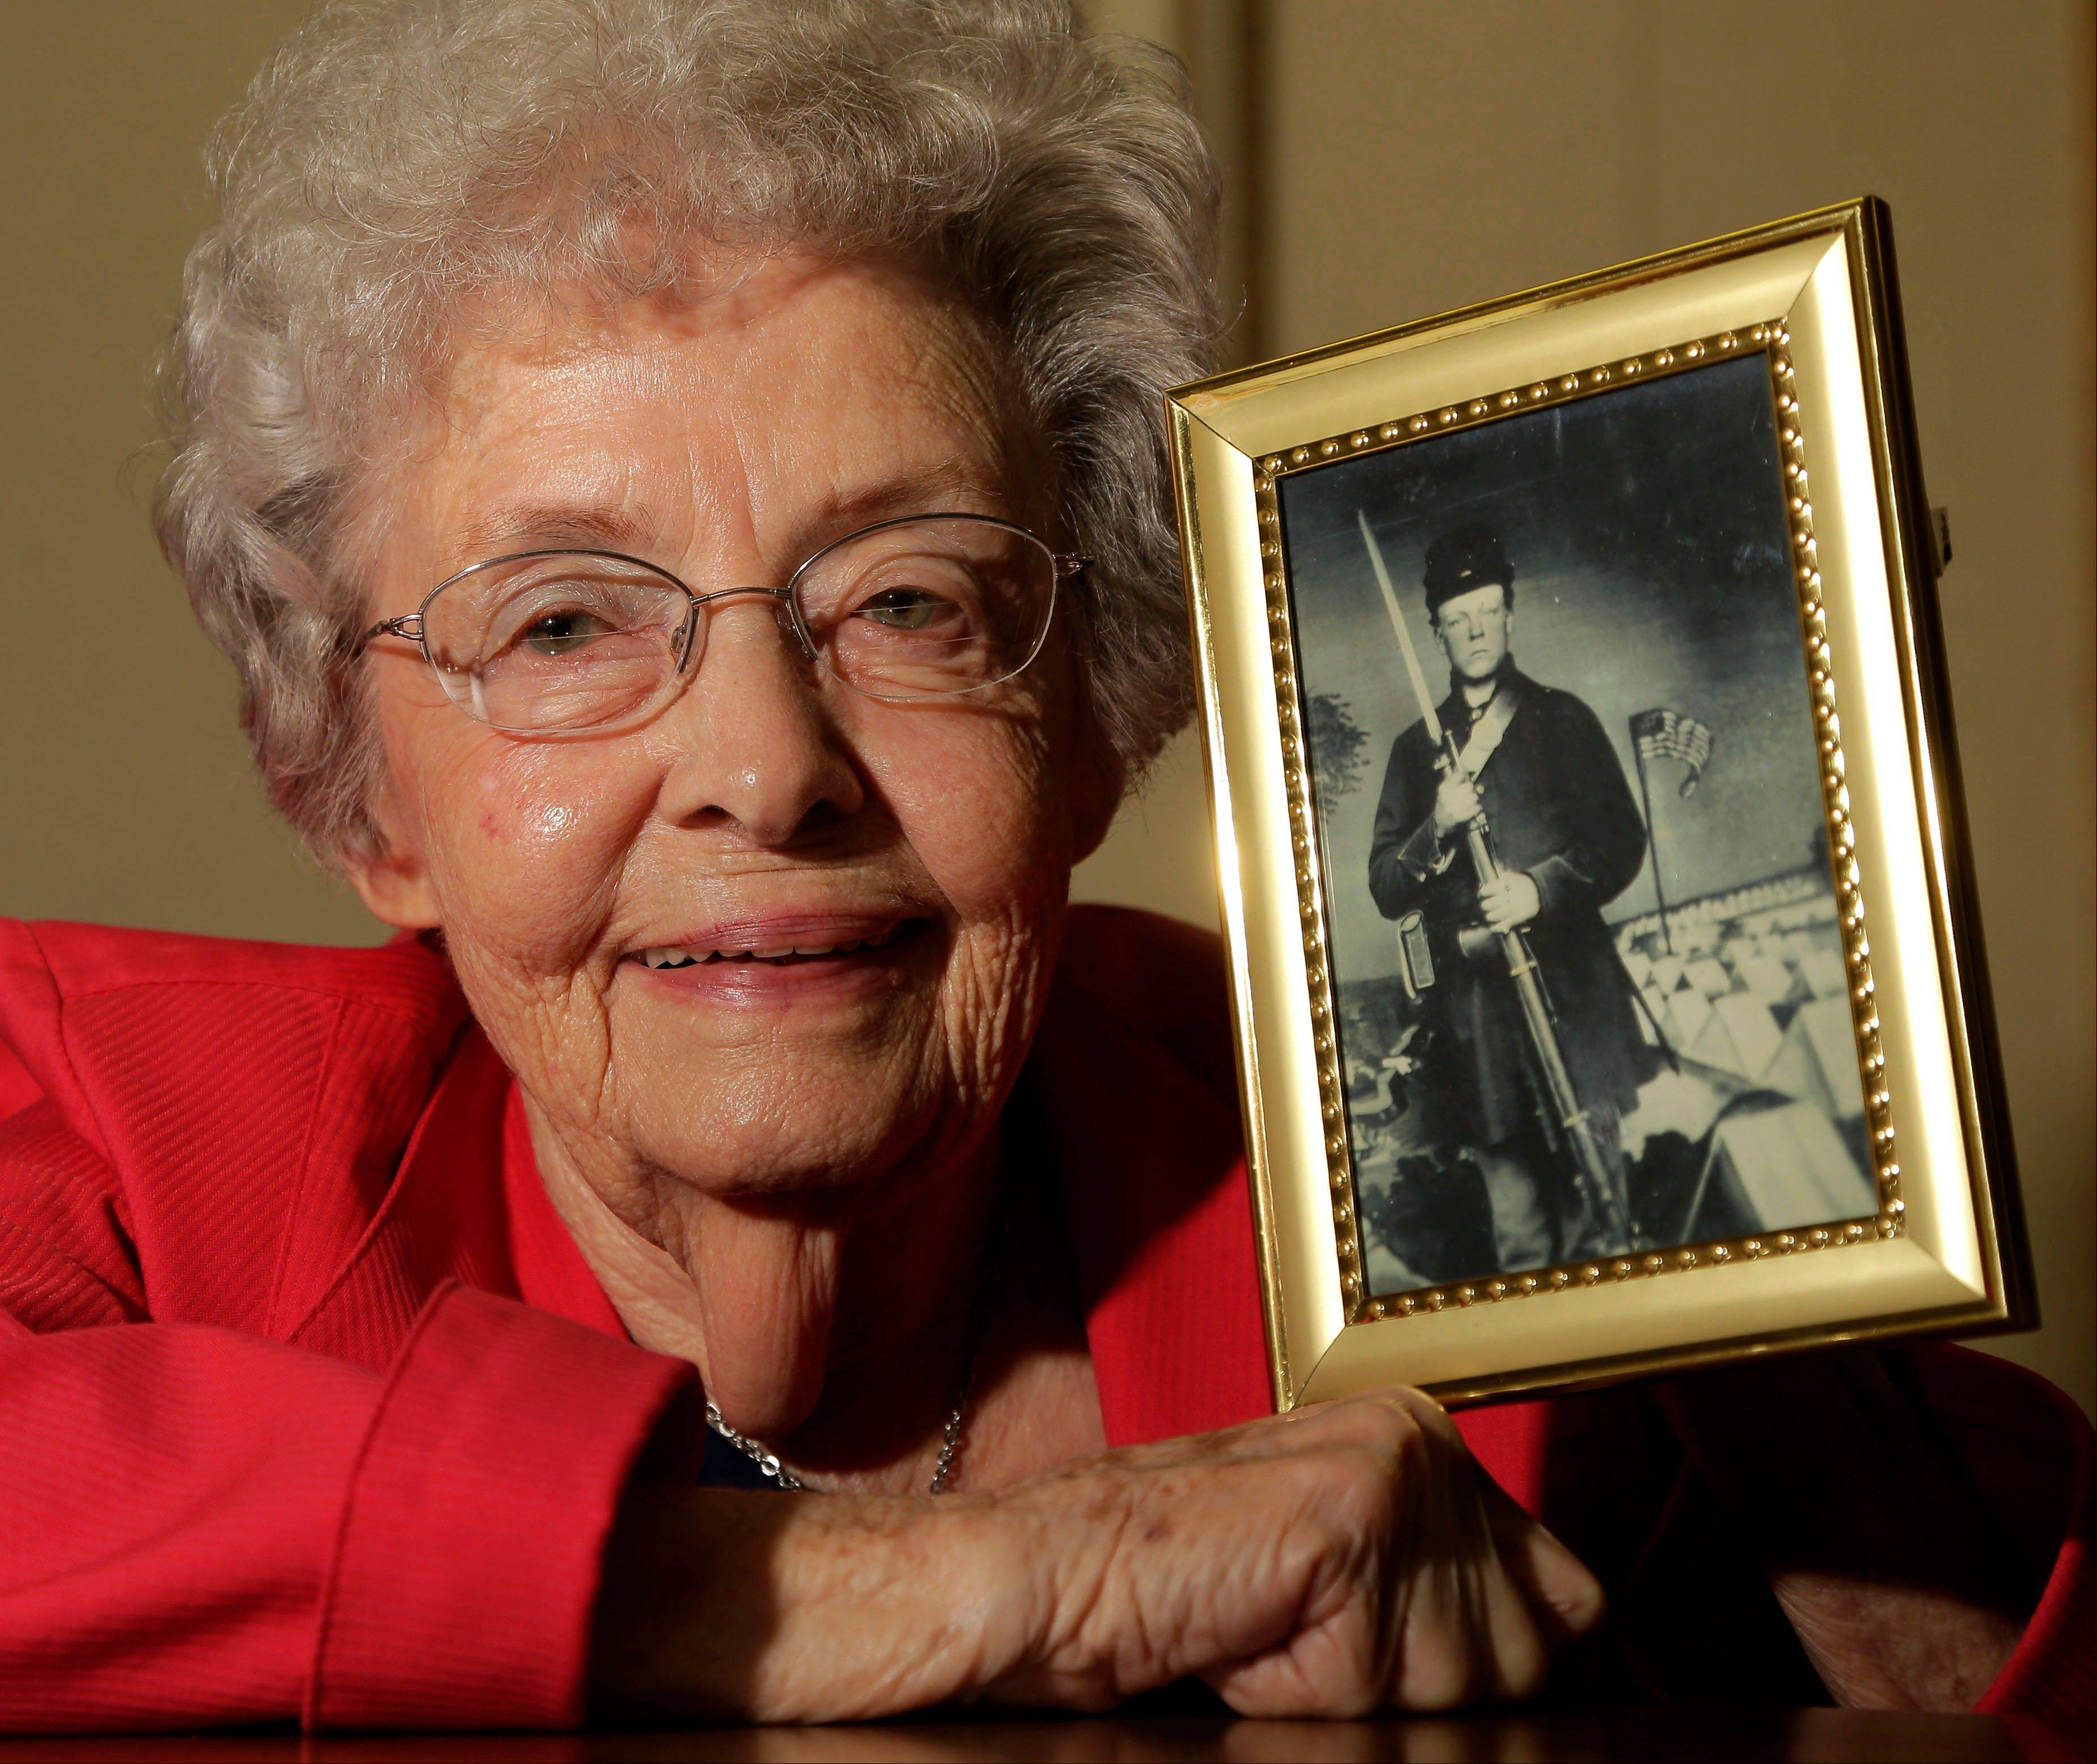 Juanita Tudor Lowrey, 86, poses with a photo of her father, Civil War veteran Hugh Tudor on Tuesday in Kearney, Mo. Lowrey received pension benefits related to her father's Civil War service until she was 18 after her father died when she was 2 years old.